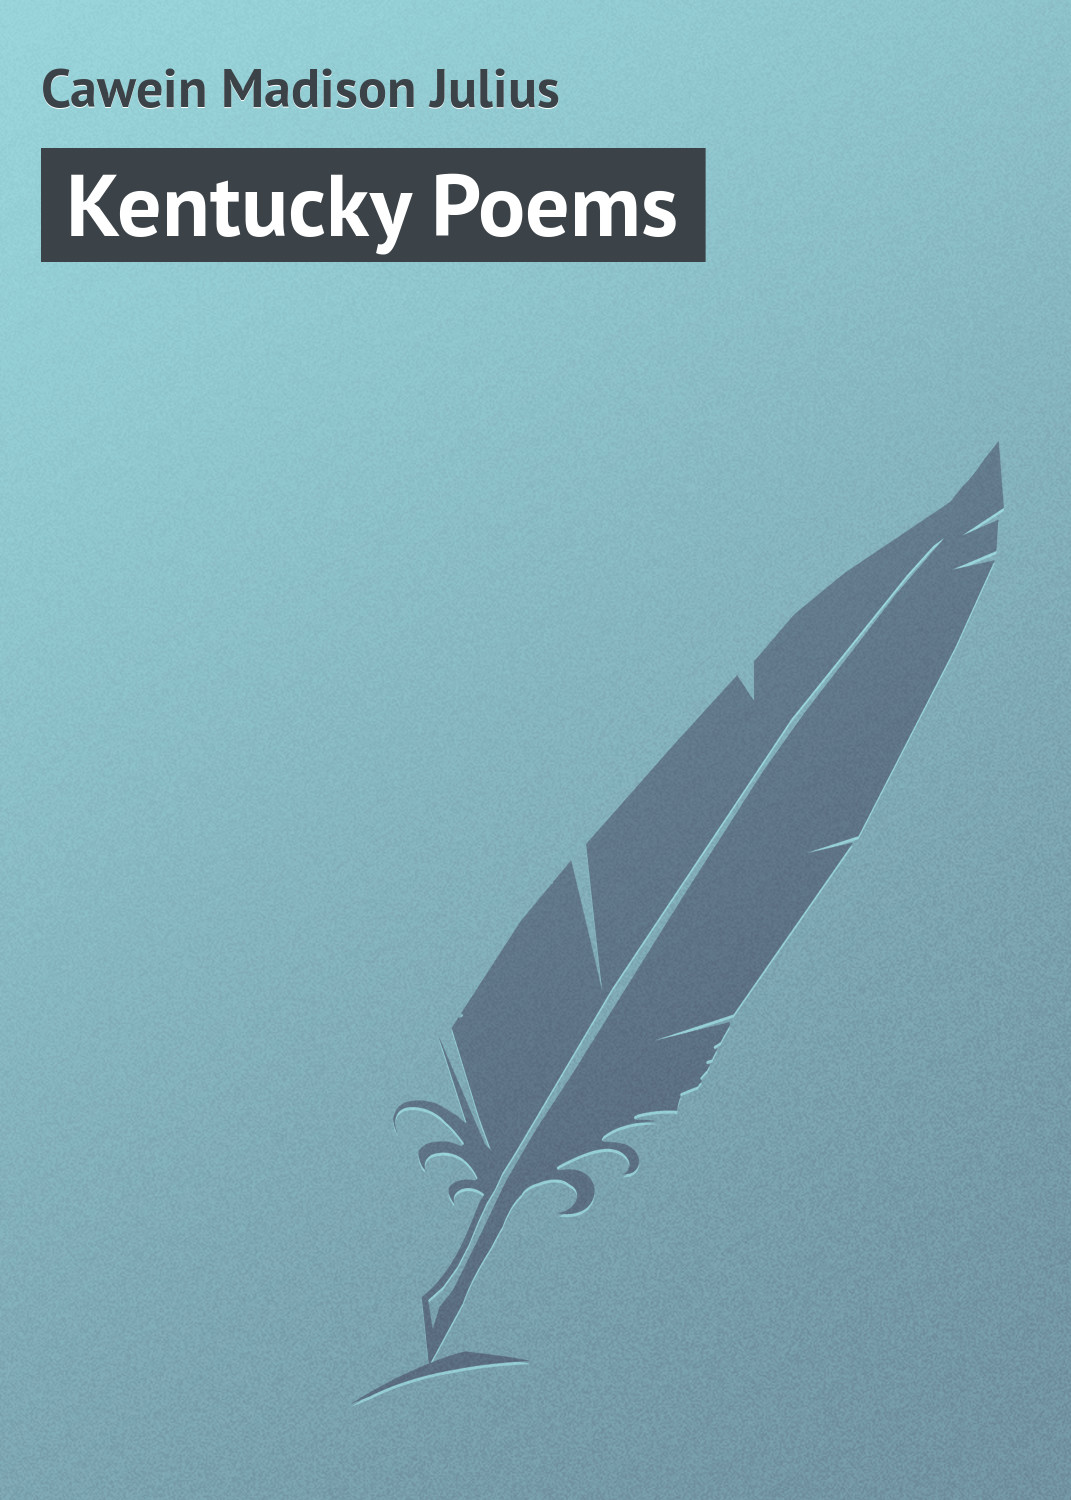 Cawein Madison Julius Kentucky Poems